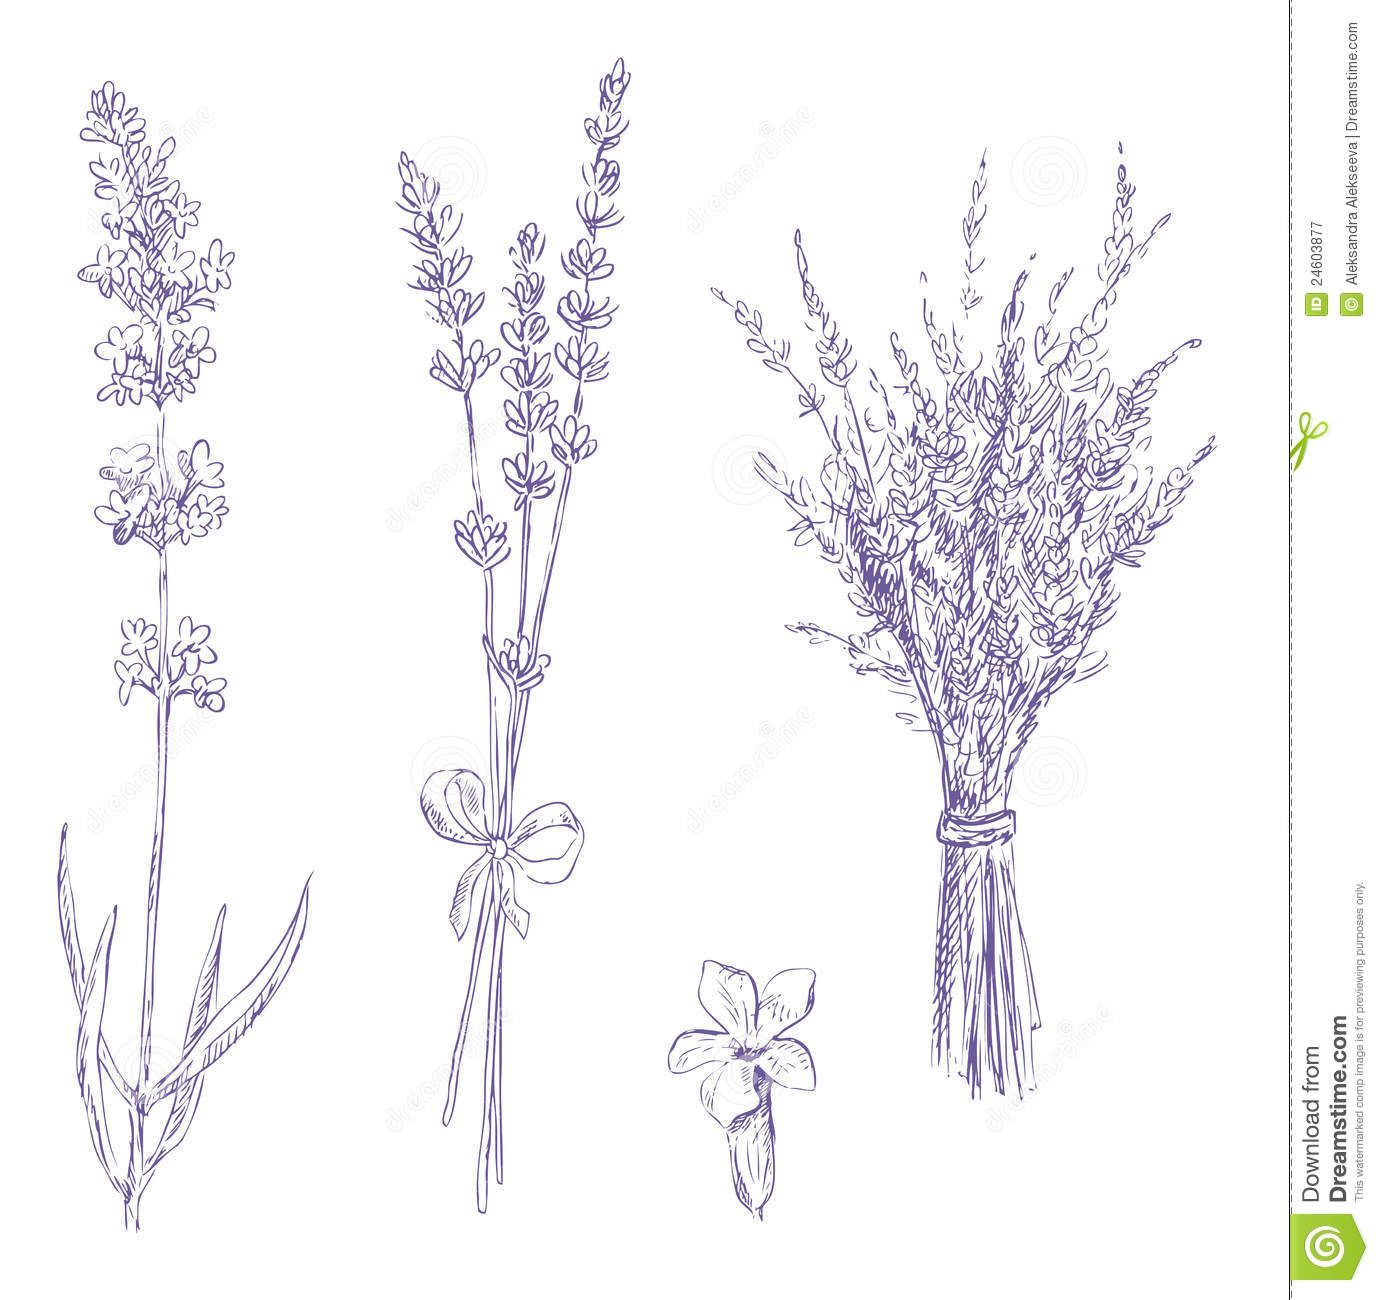 Line Drawing Lavender : Lavender pencil drawing set download from over